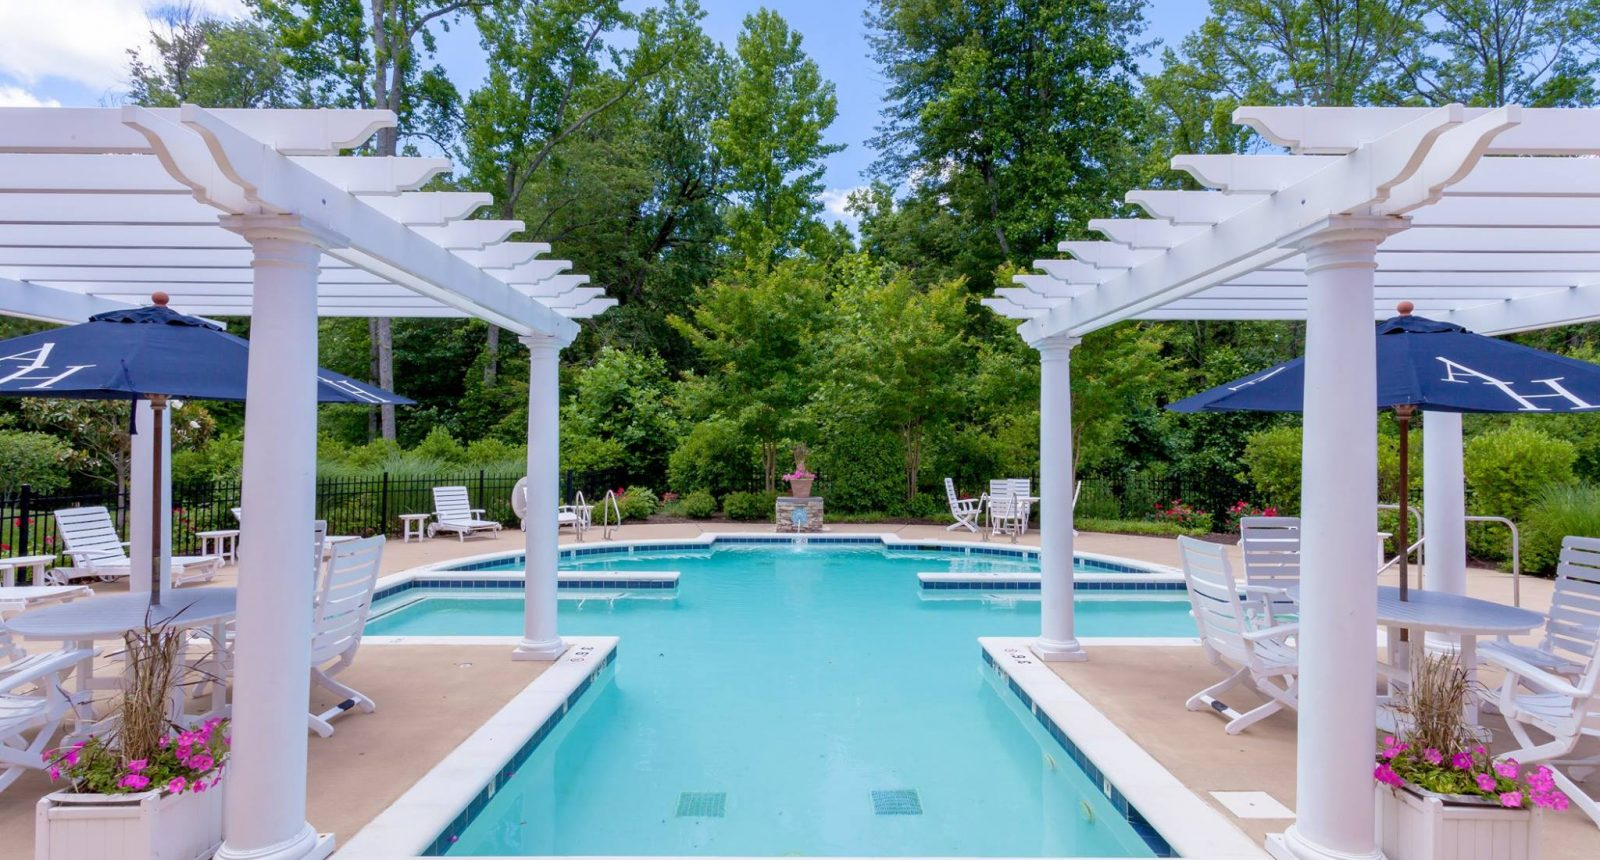 Pool and trellises at Alexander Heights Senior Apartments in Fredericksburg, VA